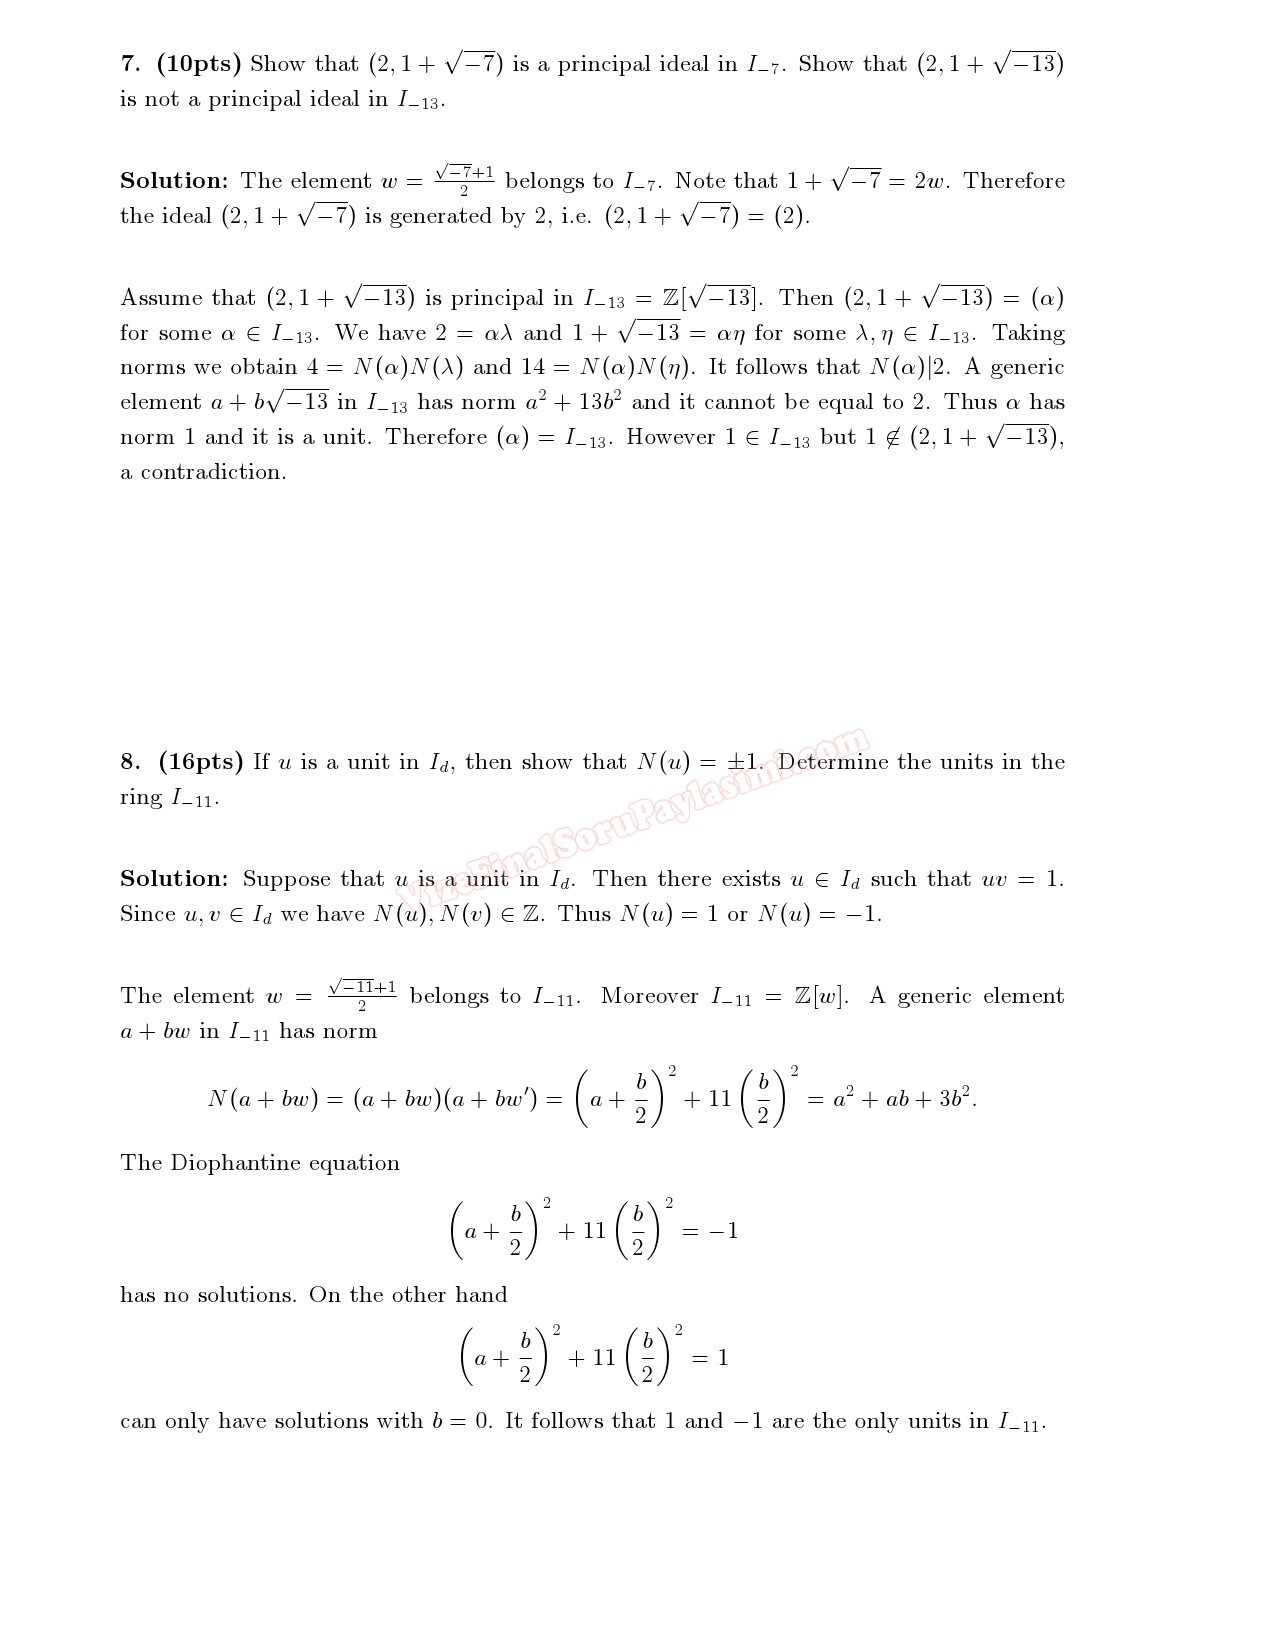 2nd midterm sample exam View, download and print samples second midterm exam problems pdf template or form online 3732 math worksheet templates are collected for any of your needs.